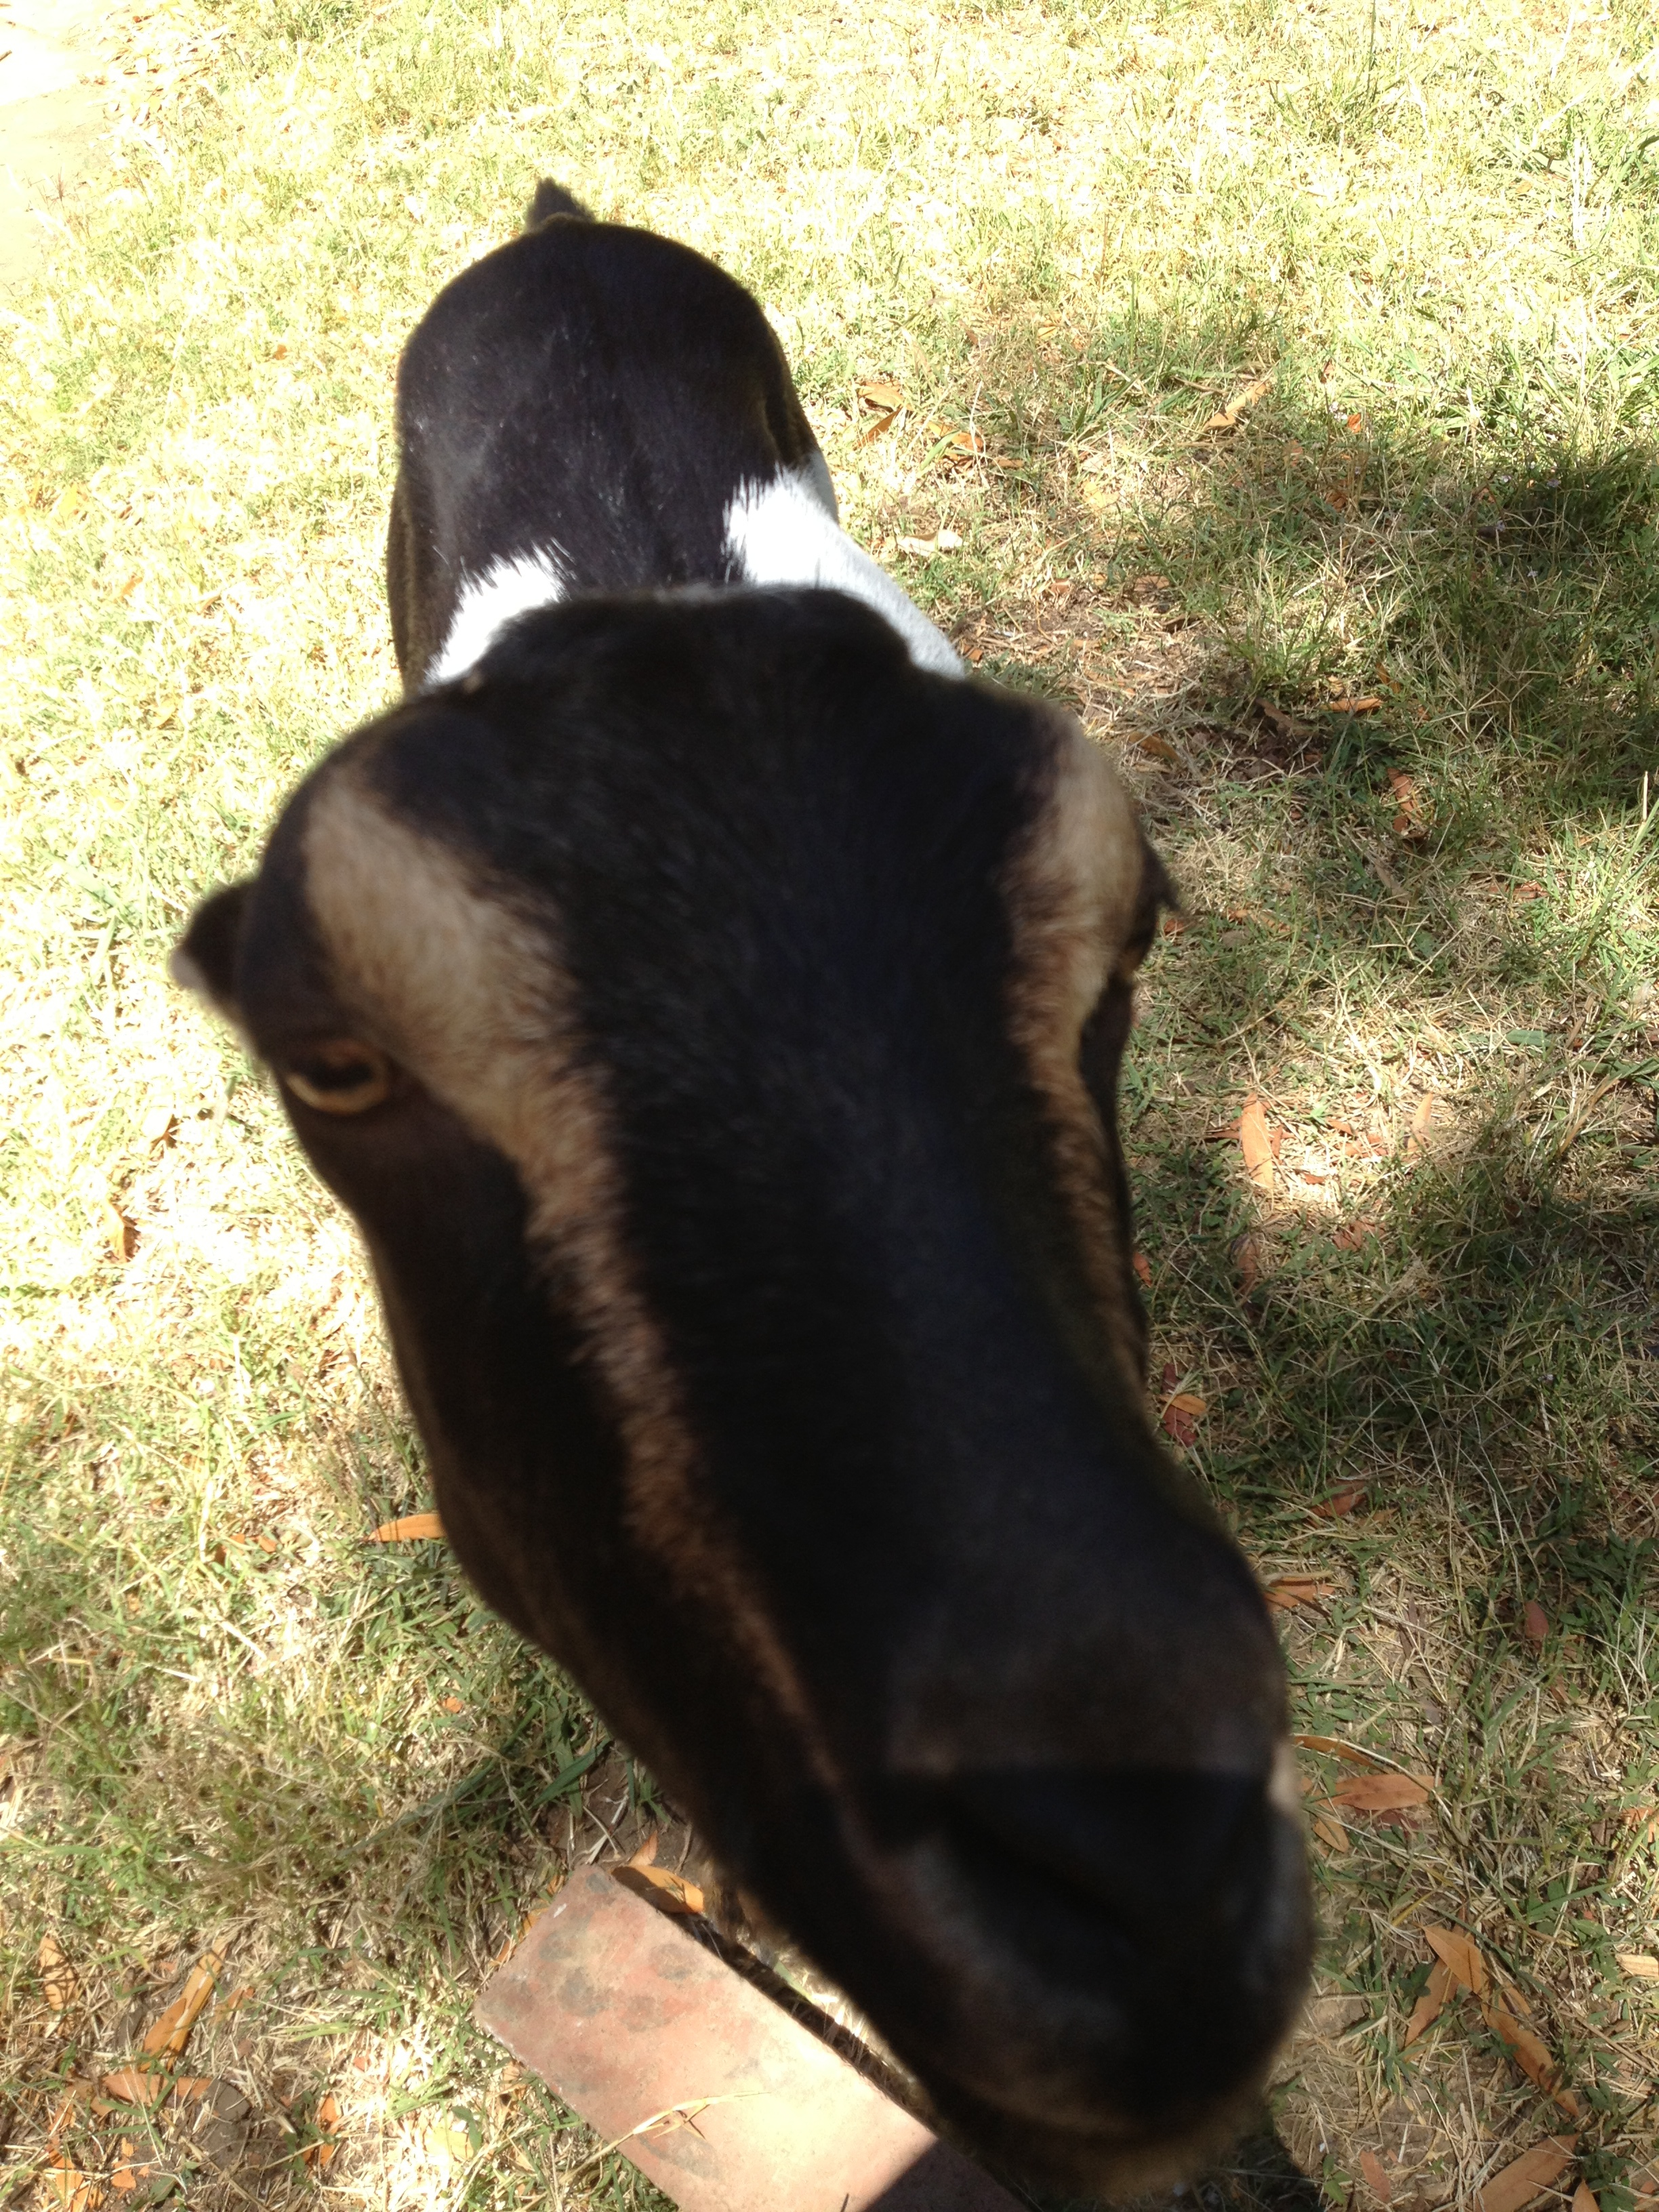 Rosie, the goat, getting curious while we cut the Arundo grass